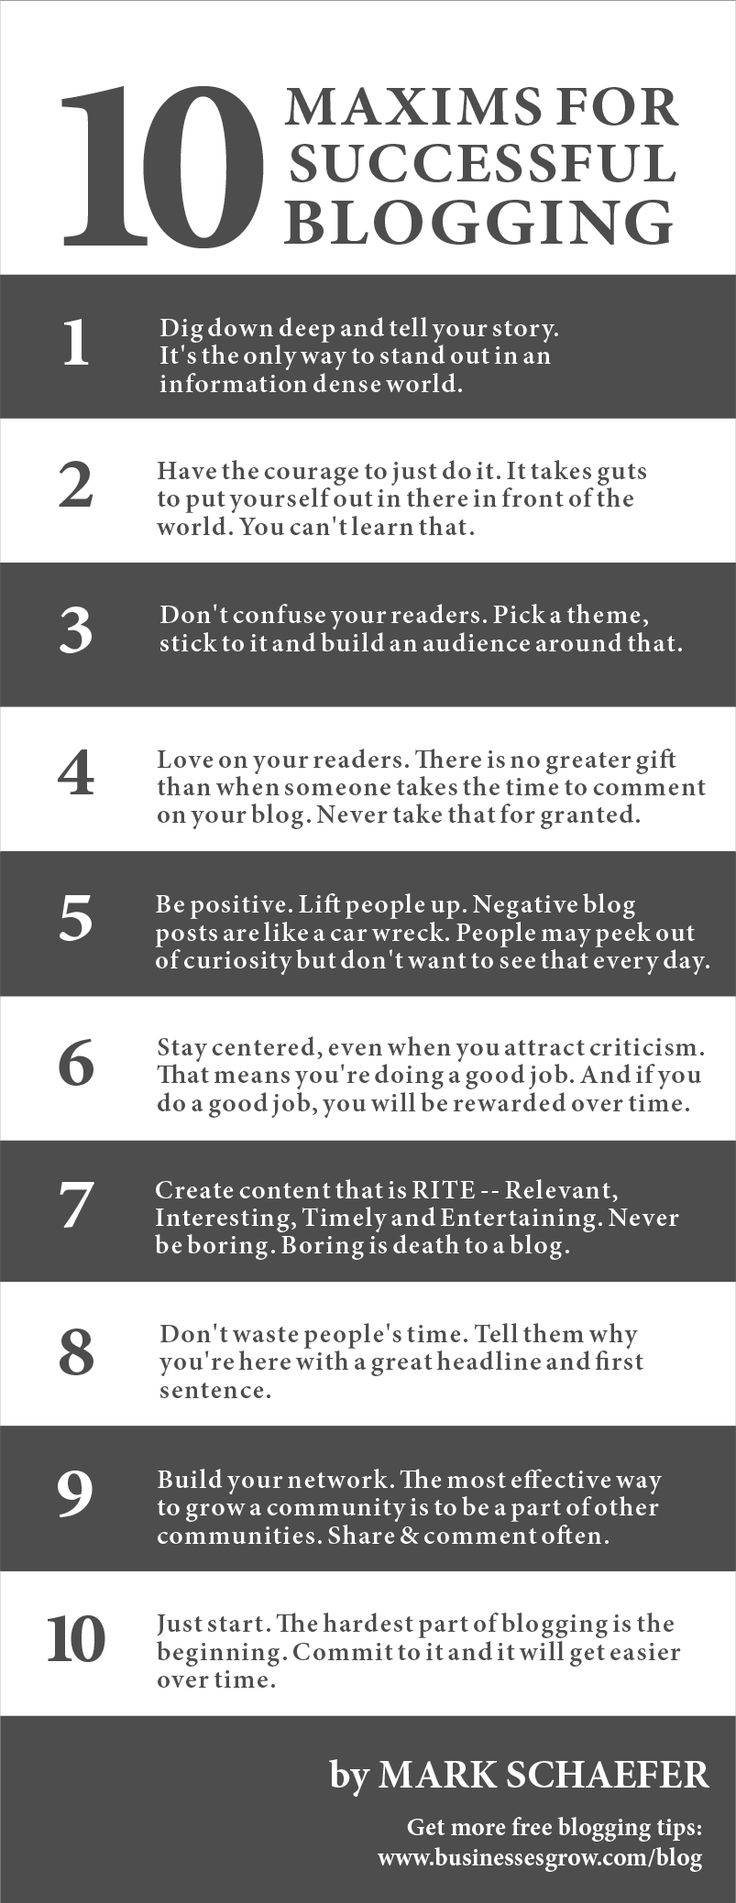 #blog #tip This is soooo helpful, a great list of blogging tips. Good for new bloggers, and a great reminder for old-time bloggers to get back on track with what they're writing for the world. #blogging